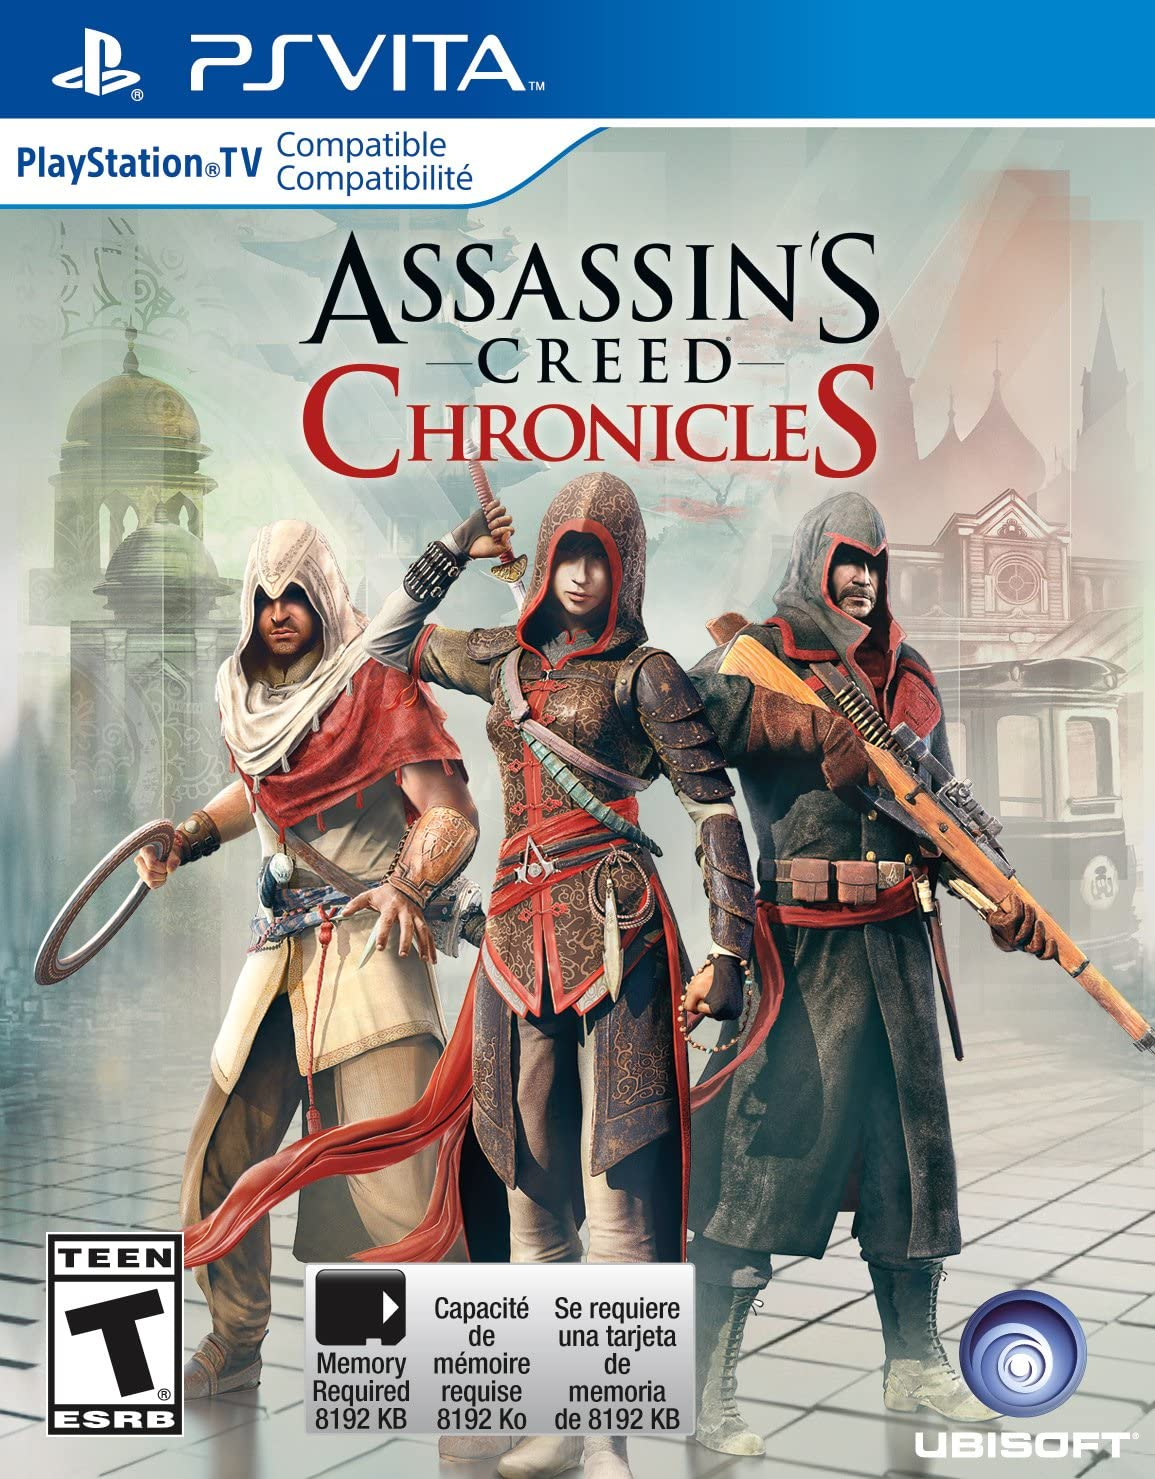 Amazon.com: ASSASSINS CREED CHRONICLES TRILOGY - PS4 ...